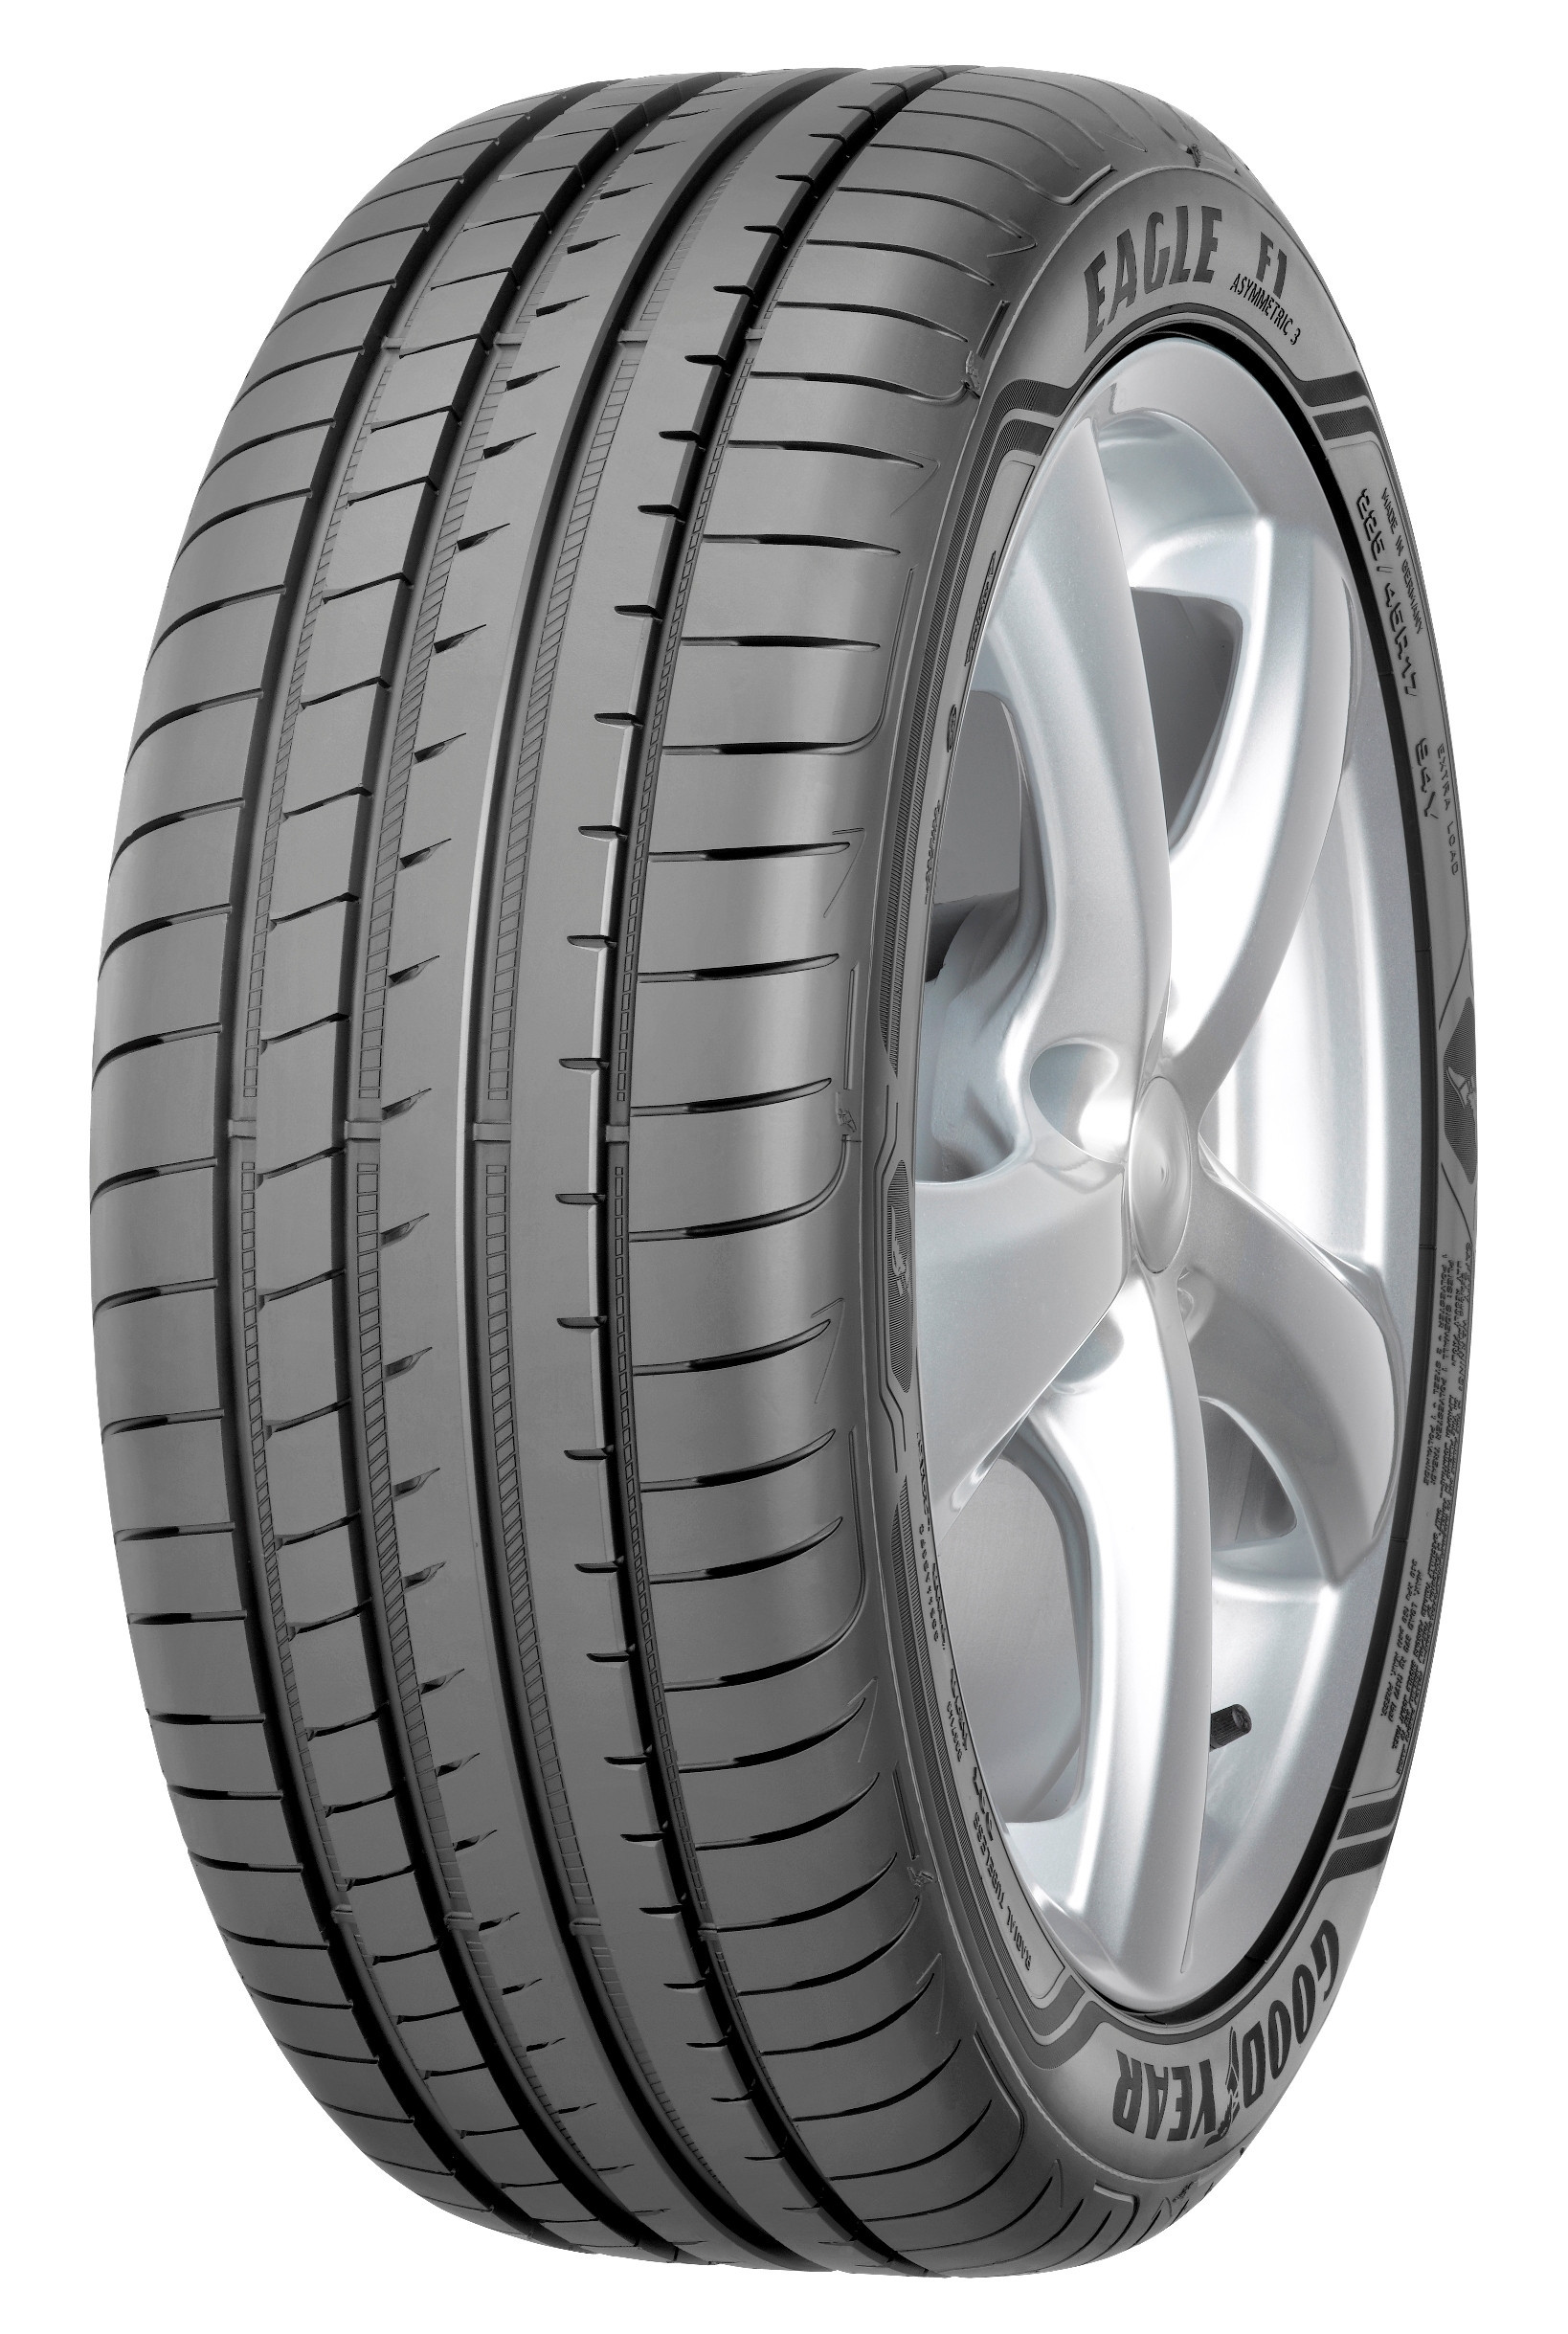 Anvelopa Vara 215/45R17 91Y Goodyear Eagle F1 Asymmetric3